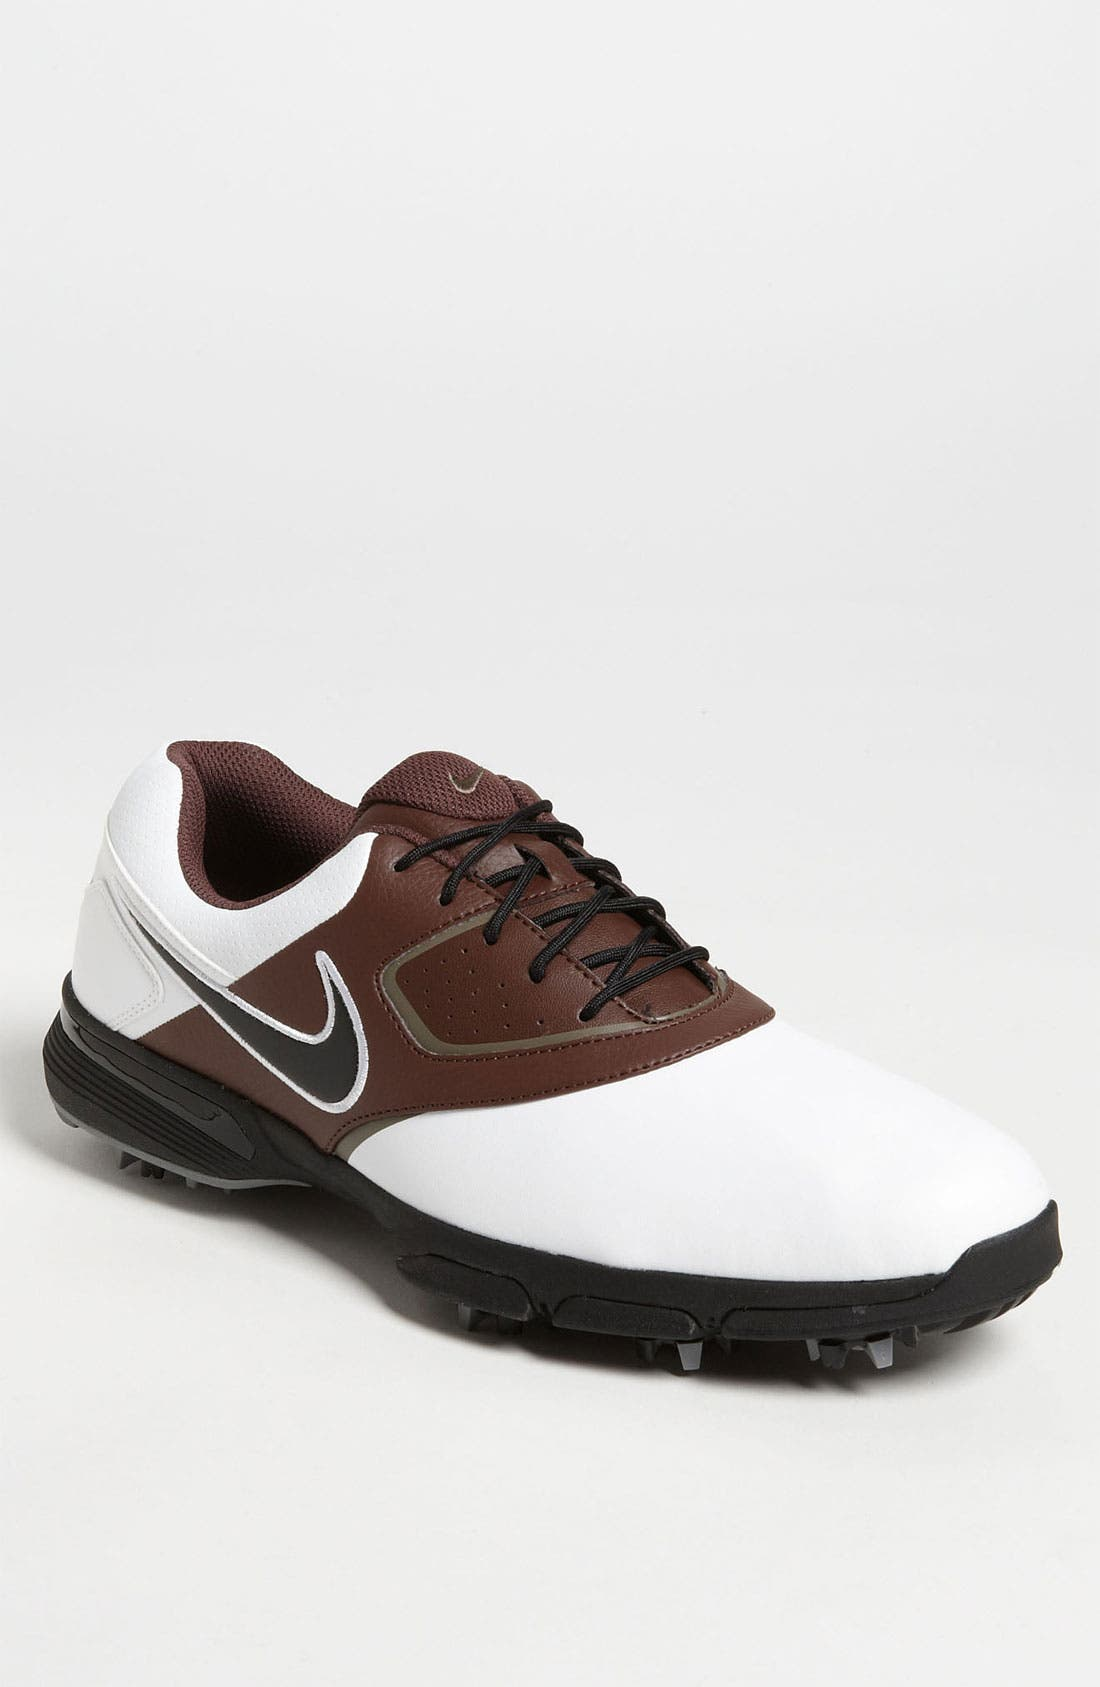 Main Image - Nike 'Heritage' Golf Shoe (Men)